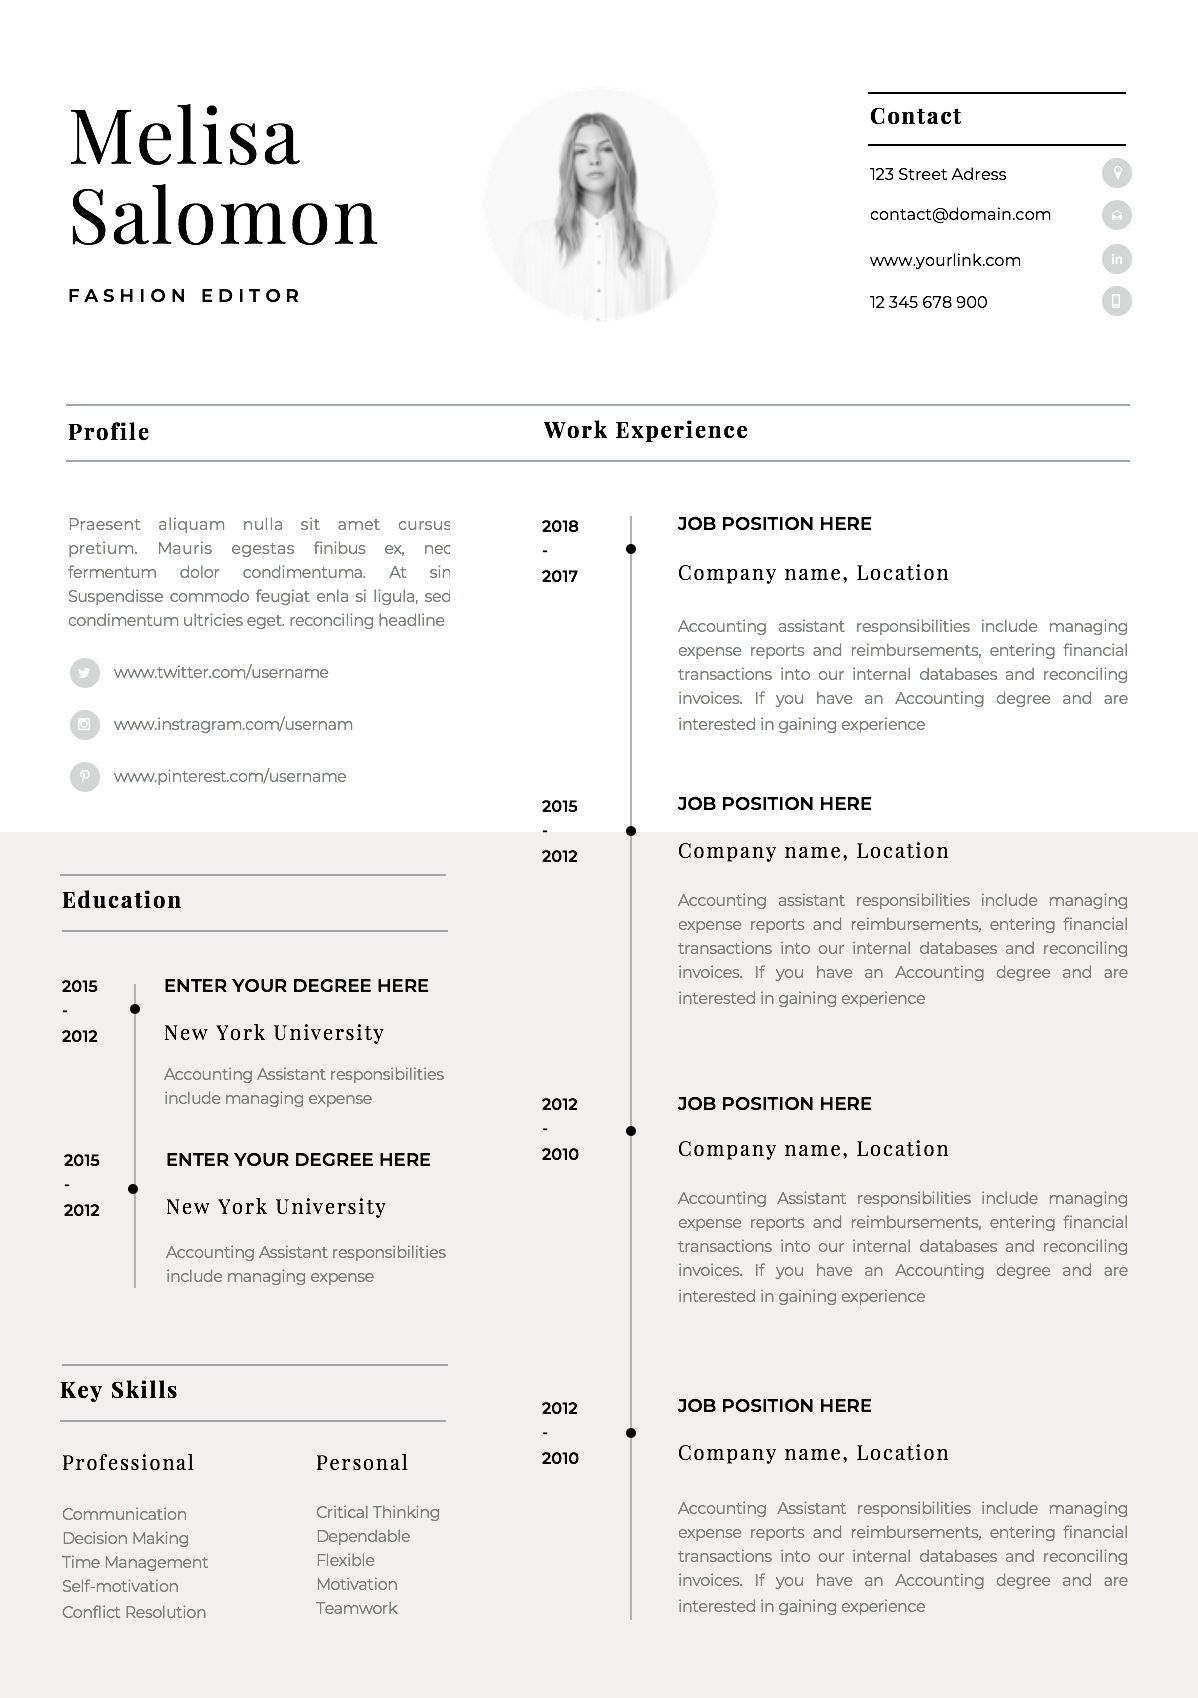 000 Exceptional Resume Template On Word Highest Quality  2007 Download 2016 How To Get 2010Full